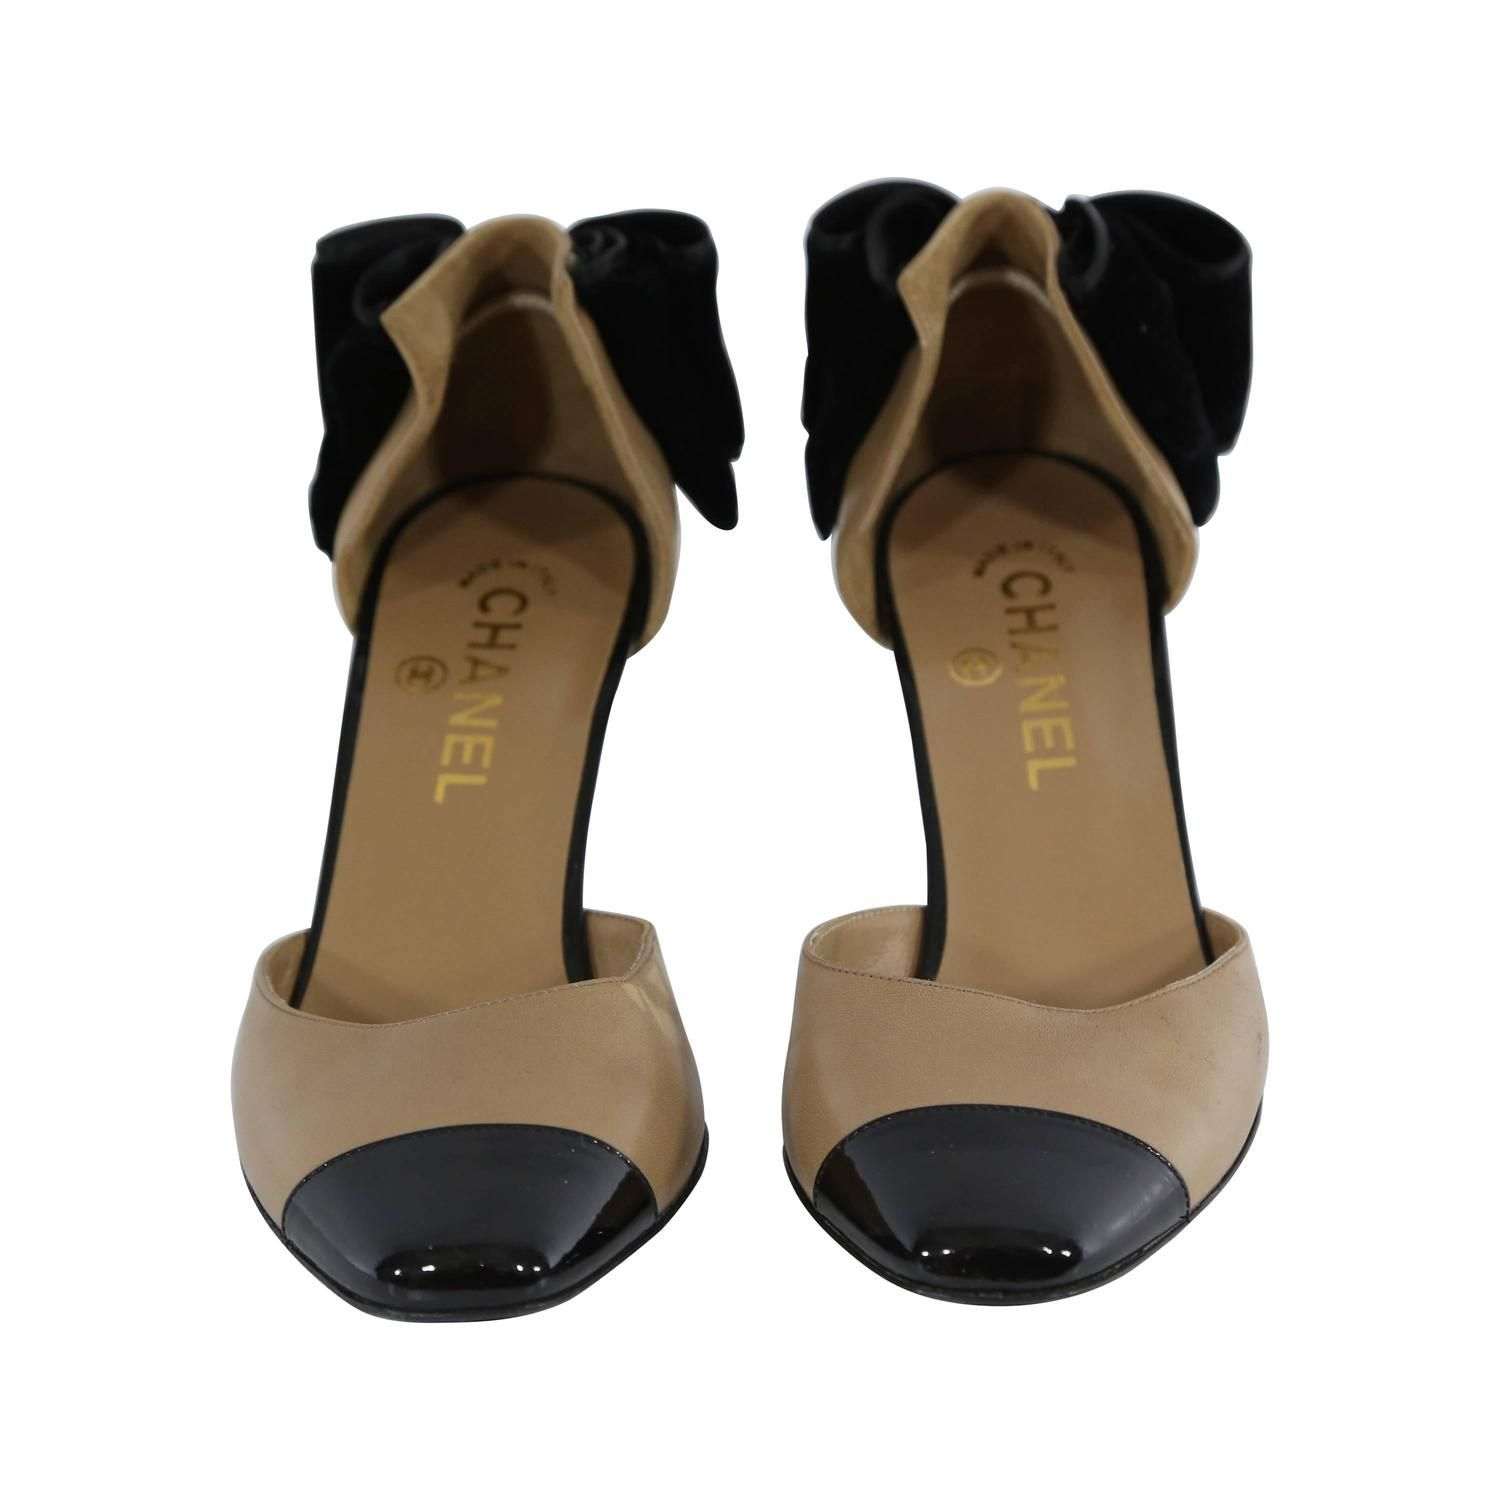 Chanel Beige Leather Pumps With Black Bows | See more vintage Shoes at https://www.1stdibs.com/fashion/accessories/shoes in 1stdibs